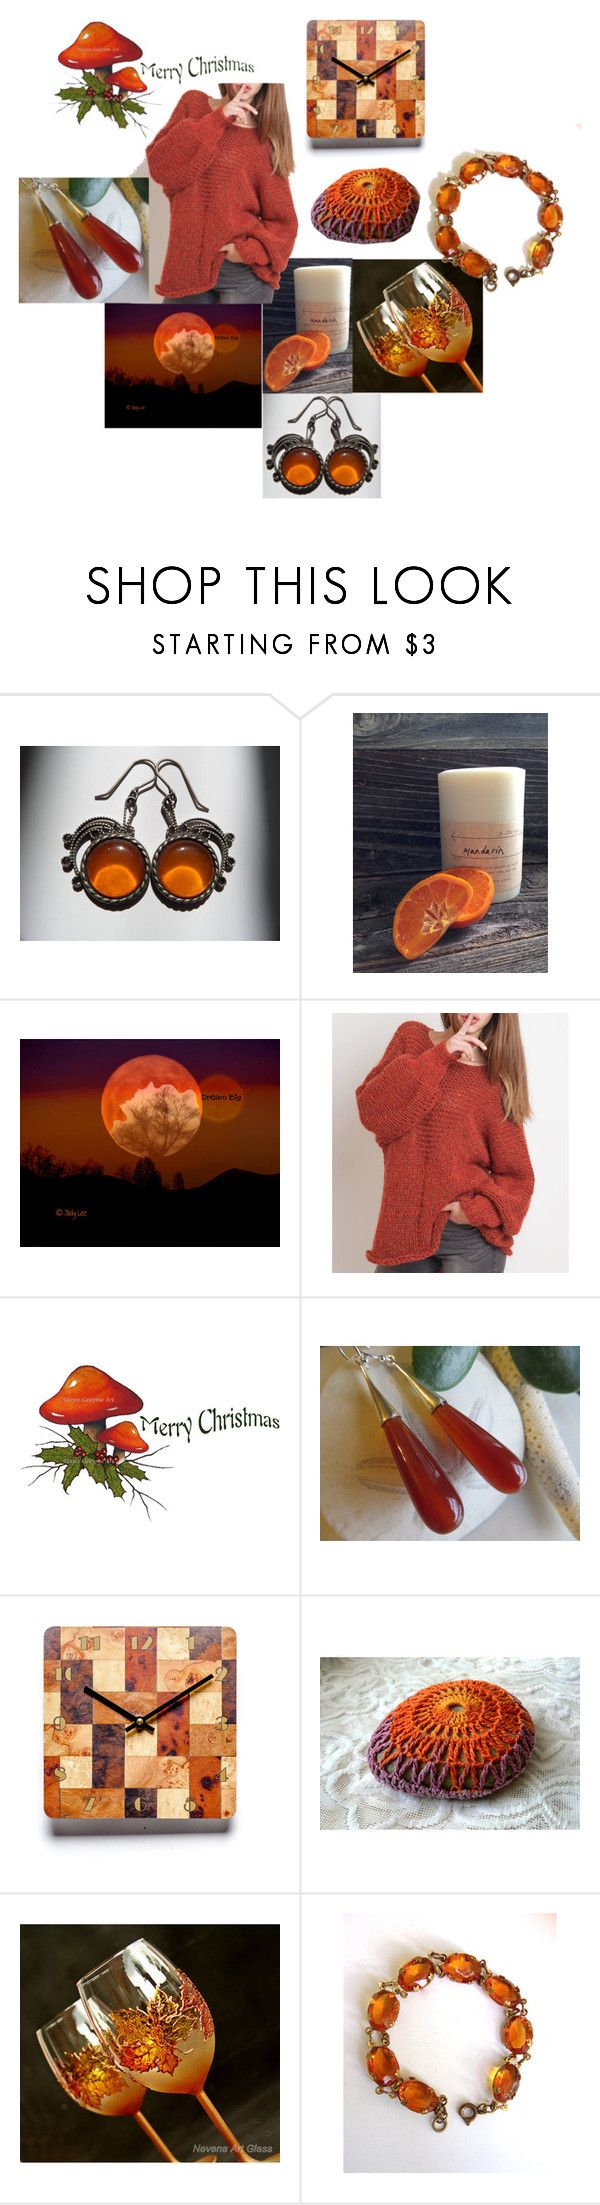 """Christmas Secrets"" by inspiredbyten ❤ liked on Polyvore featuring vintage"